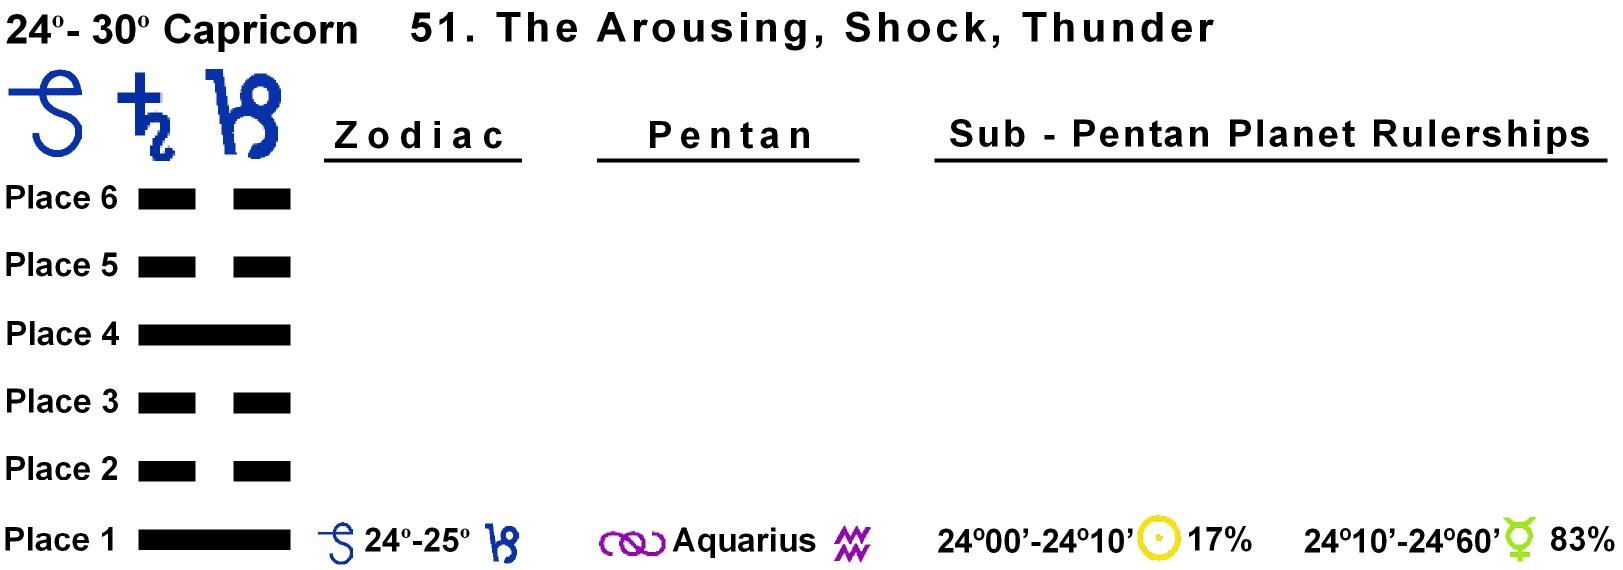 Pent-lines-10CP 24-25 Hx-51 The Arousing